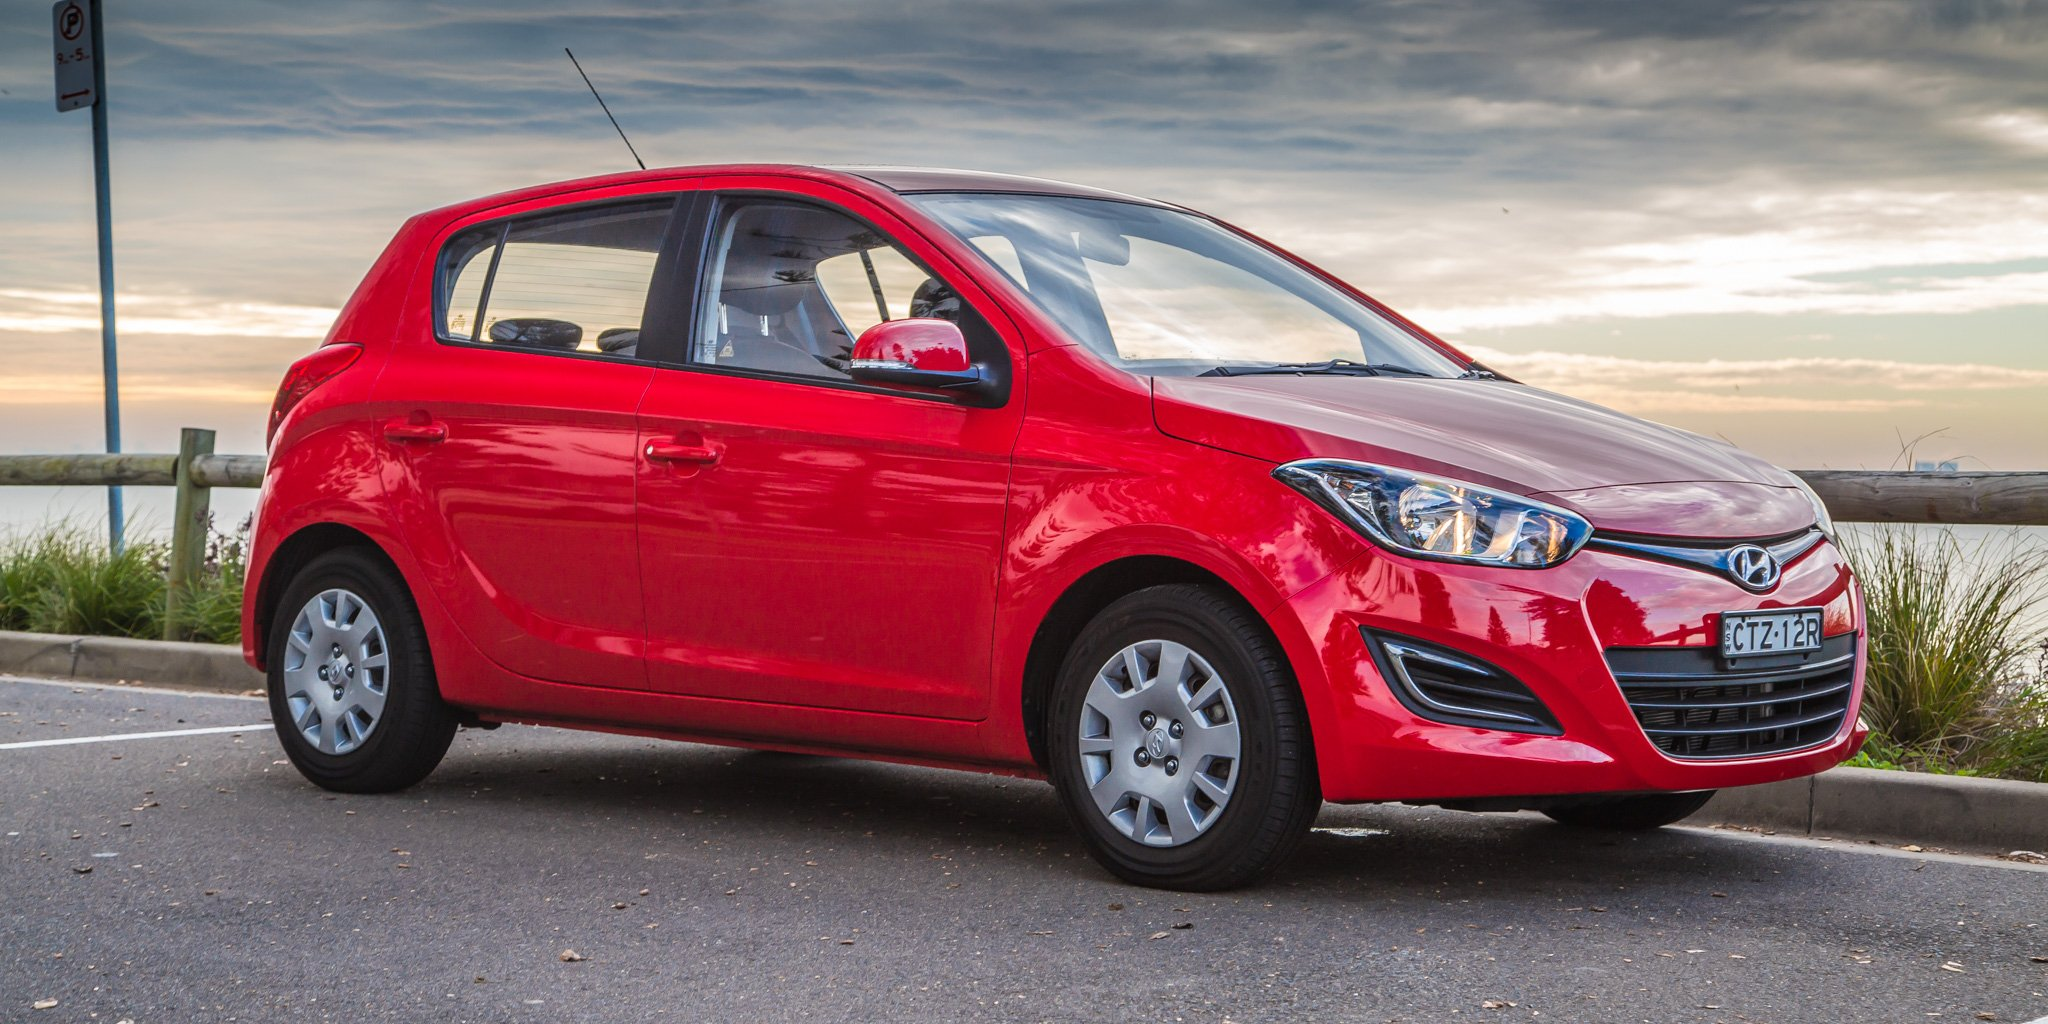 Hyundai I20 Reviews >> 2015 Hyundai i20 Active Review | CarAdvice